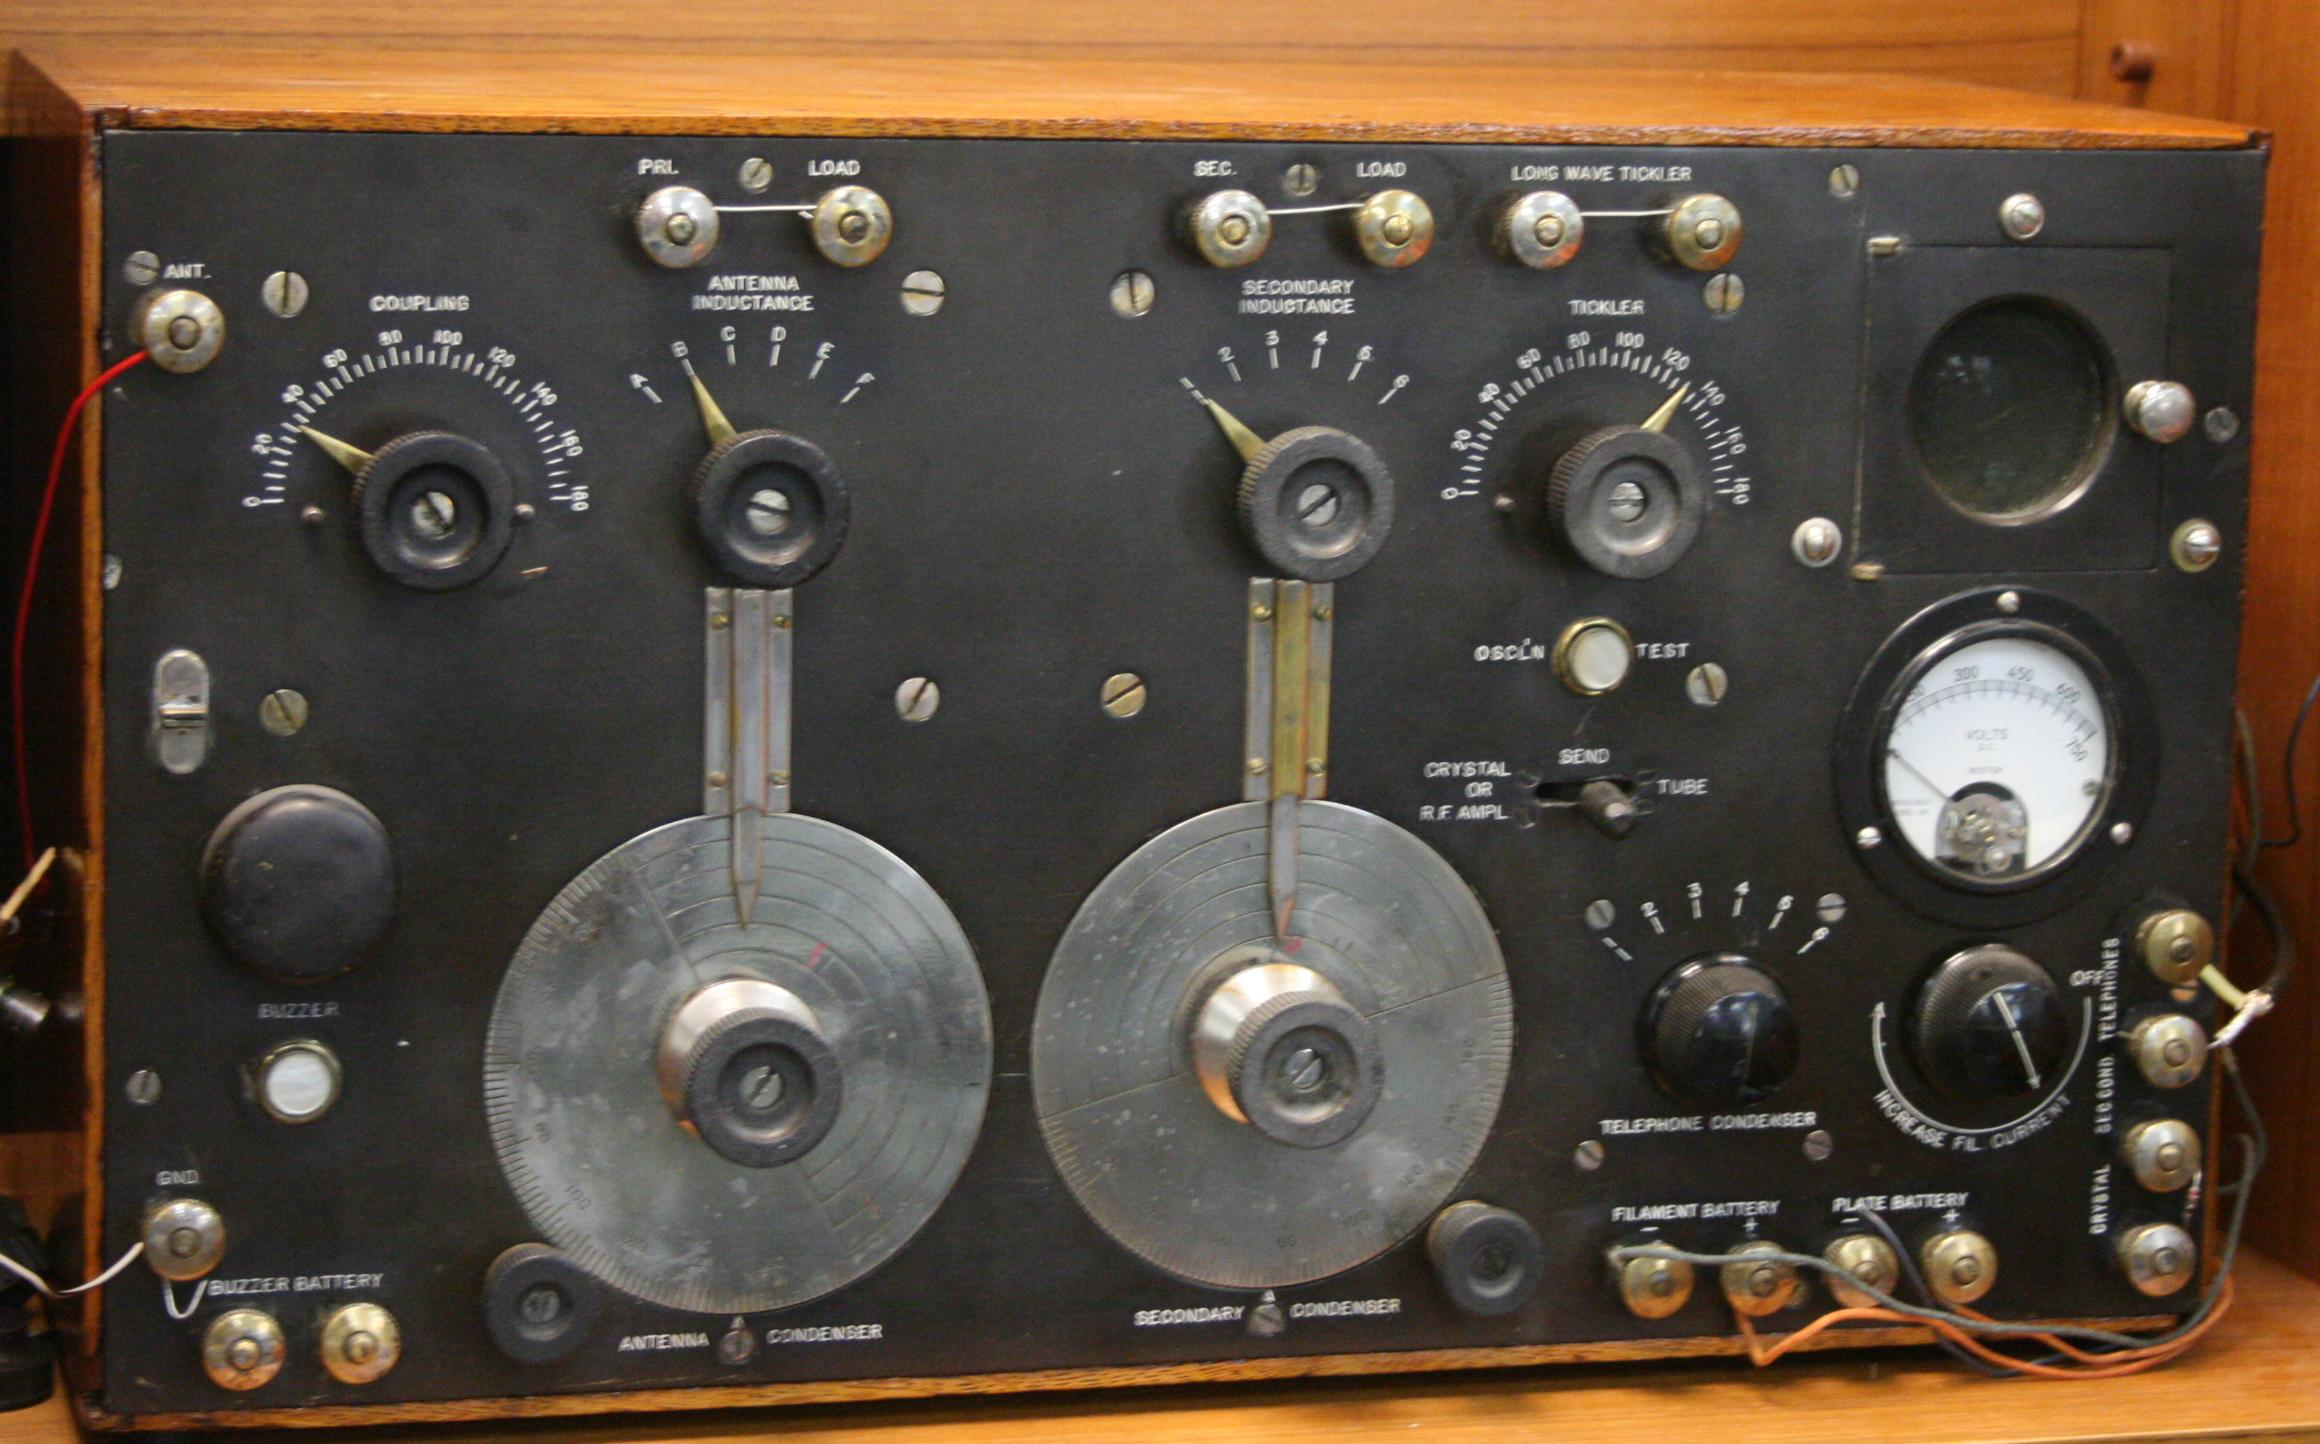 Antiqueele one tube regenerative radio kit a 201 further 2 1t4 likewise 266152 Aviation Band Super Regenerative Radio Receiver 2 A additionally  as well Watch. on vacuum tube radio receiver